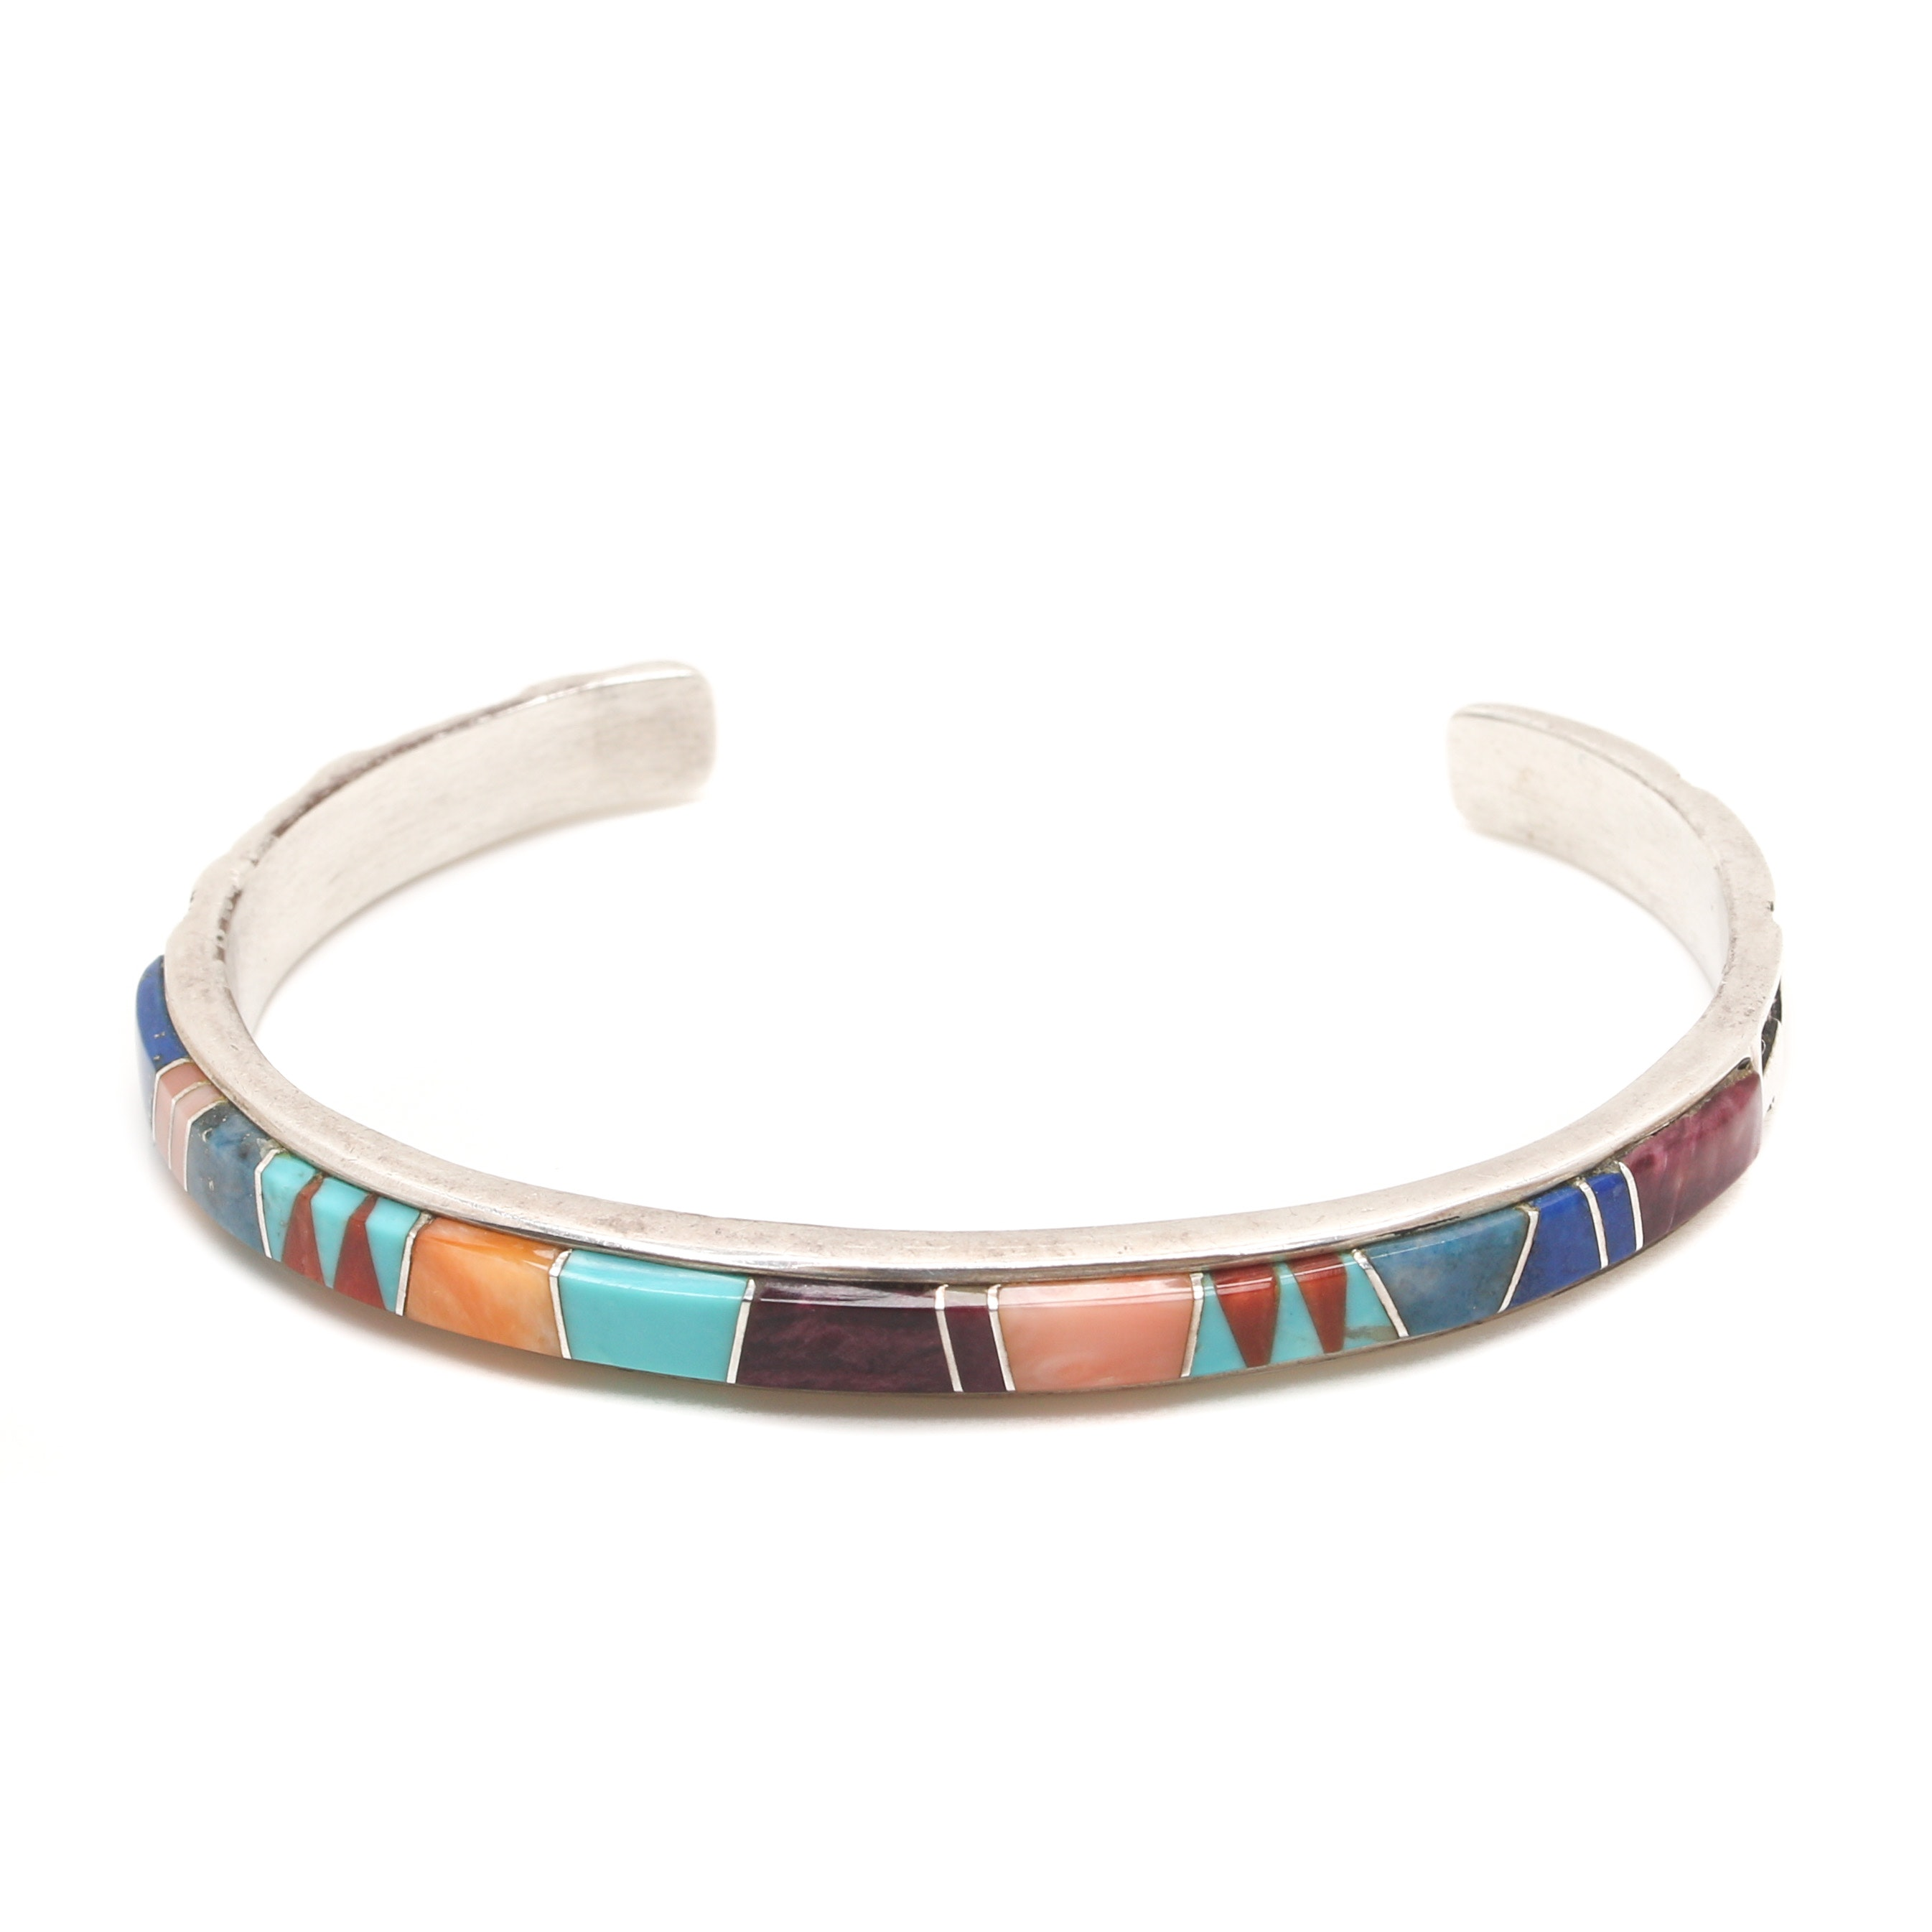 Marlene Watson Navajo Sterling Silver Turquoise and Gemstone Inlay Bracelet